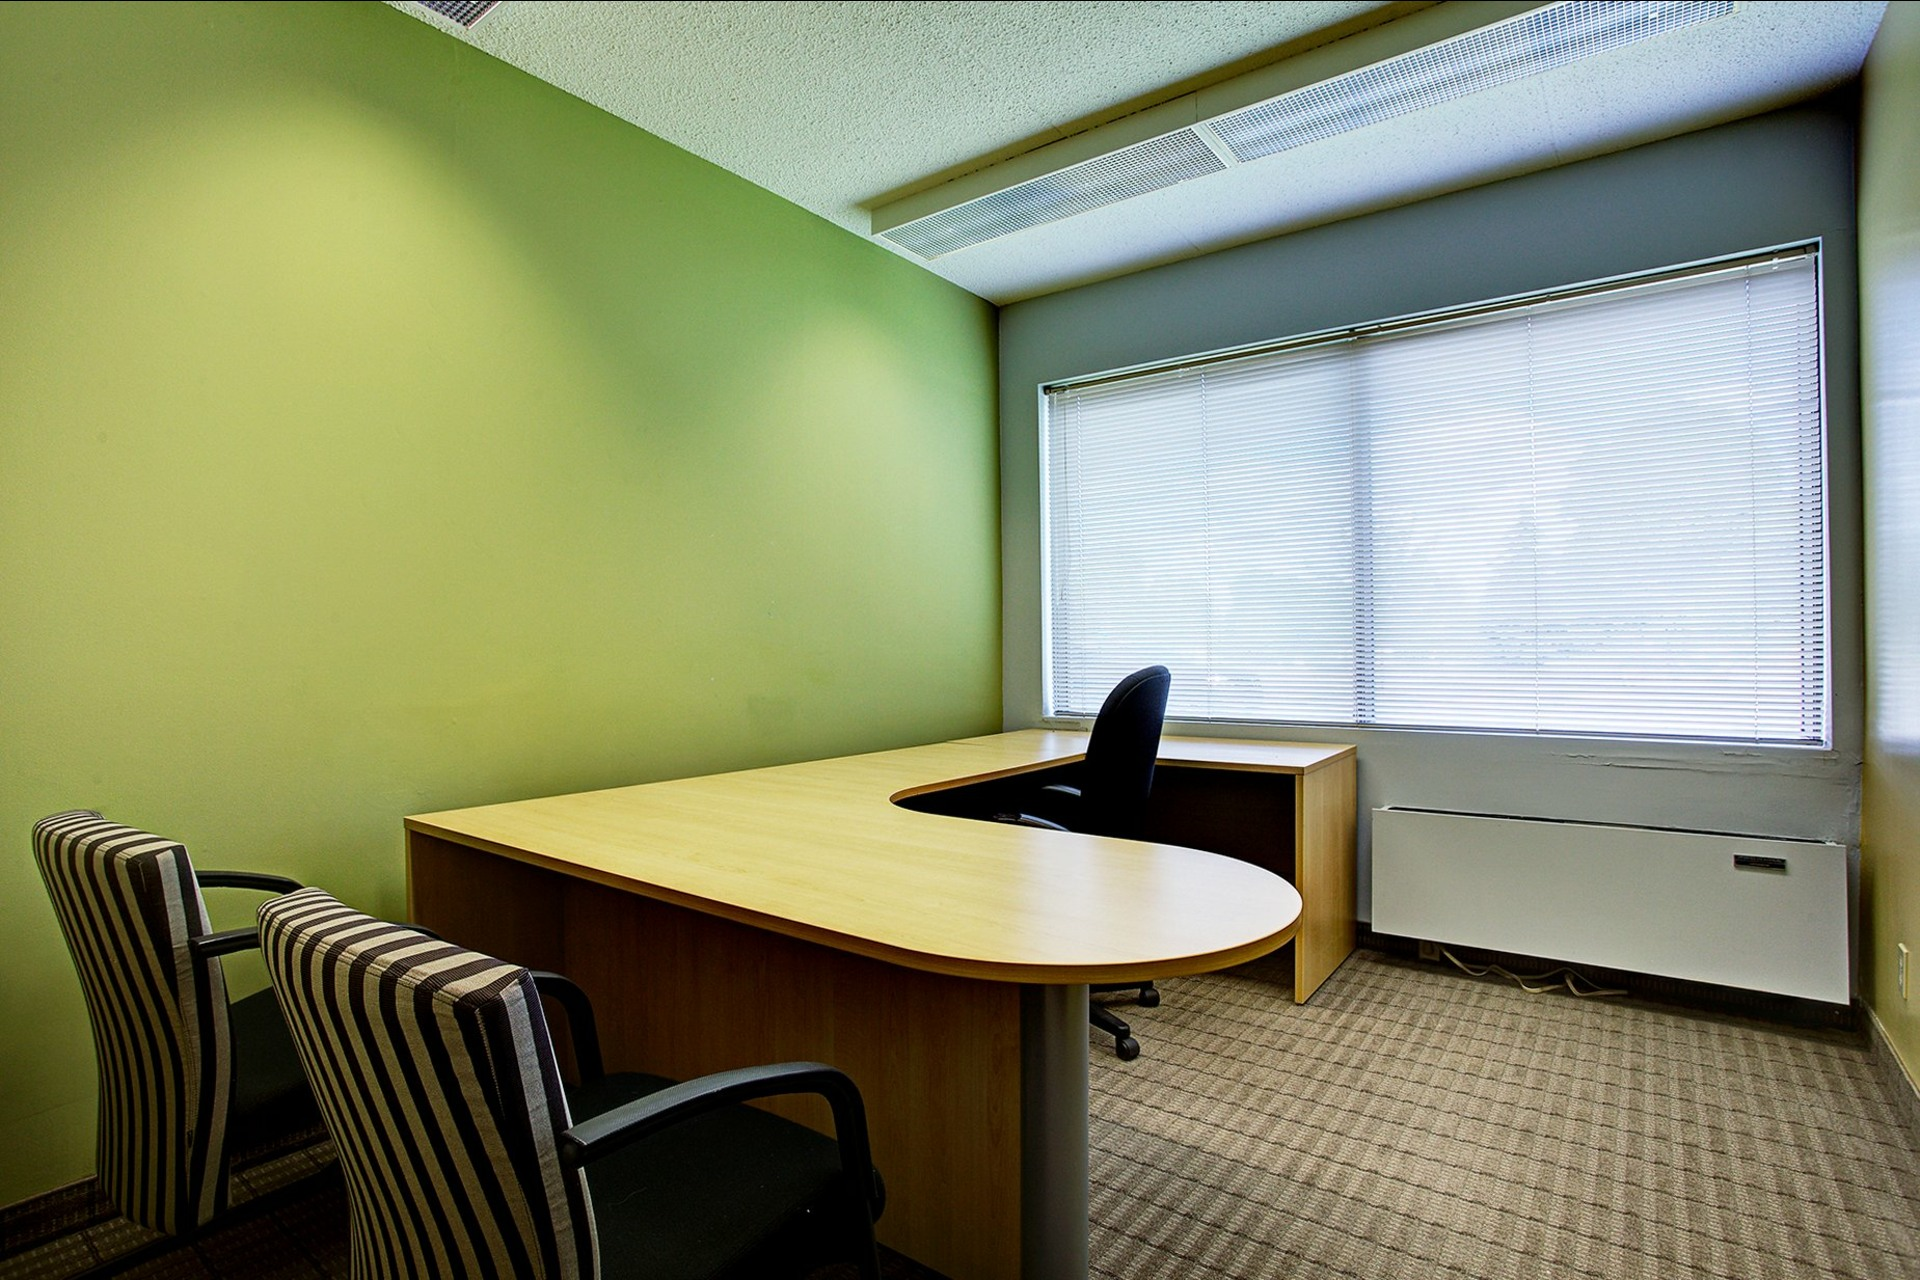 image 8 - Office For rent Rigaud